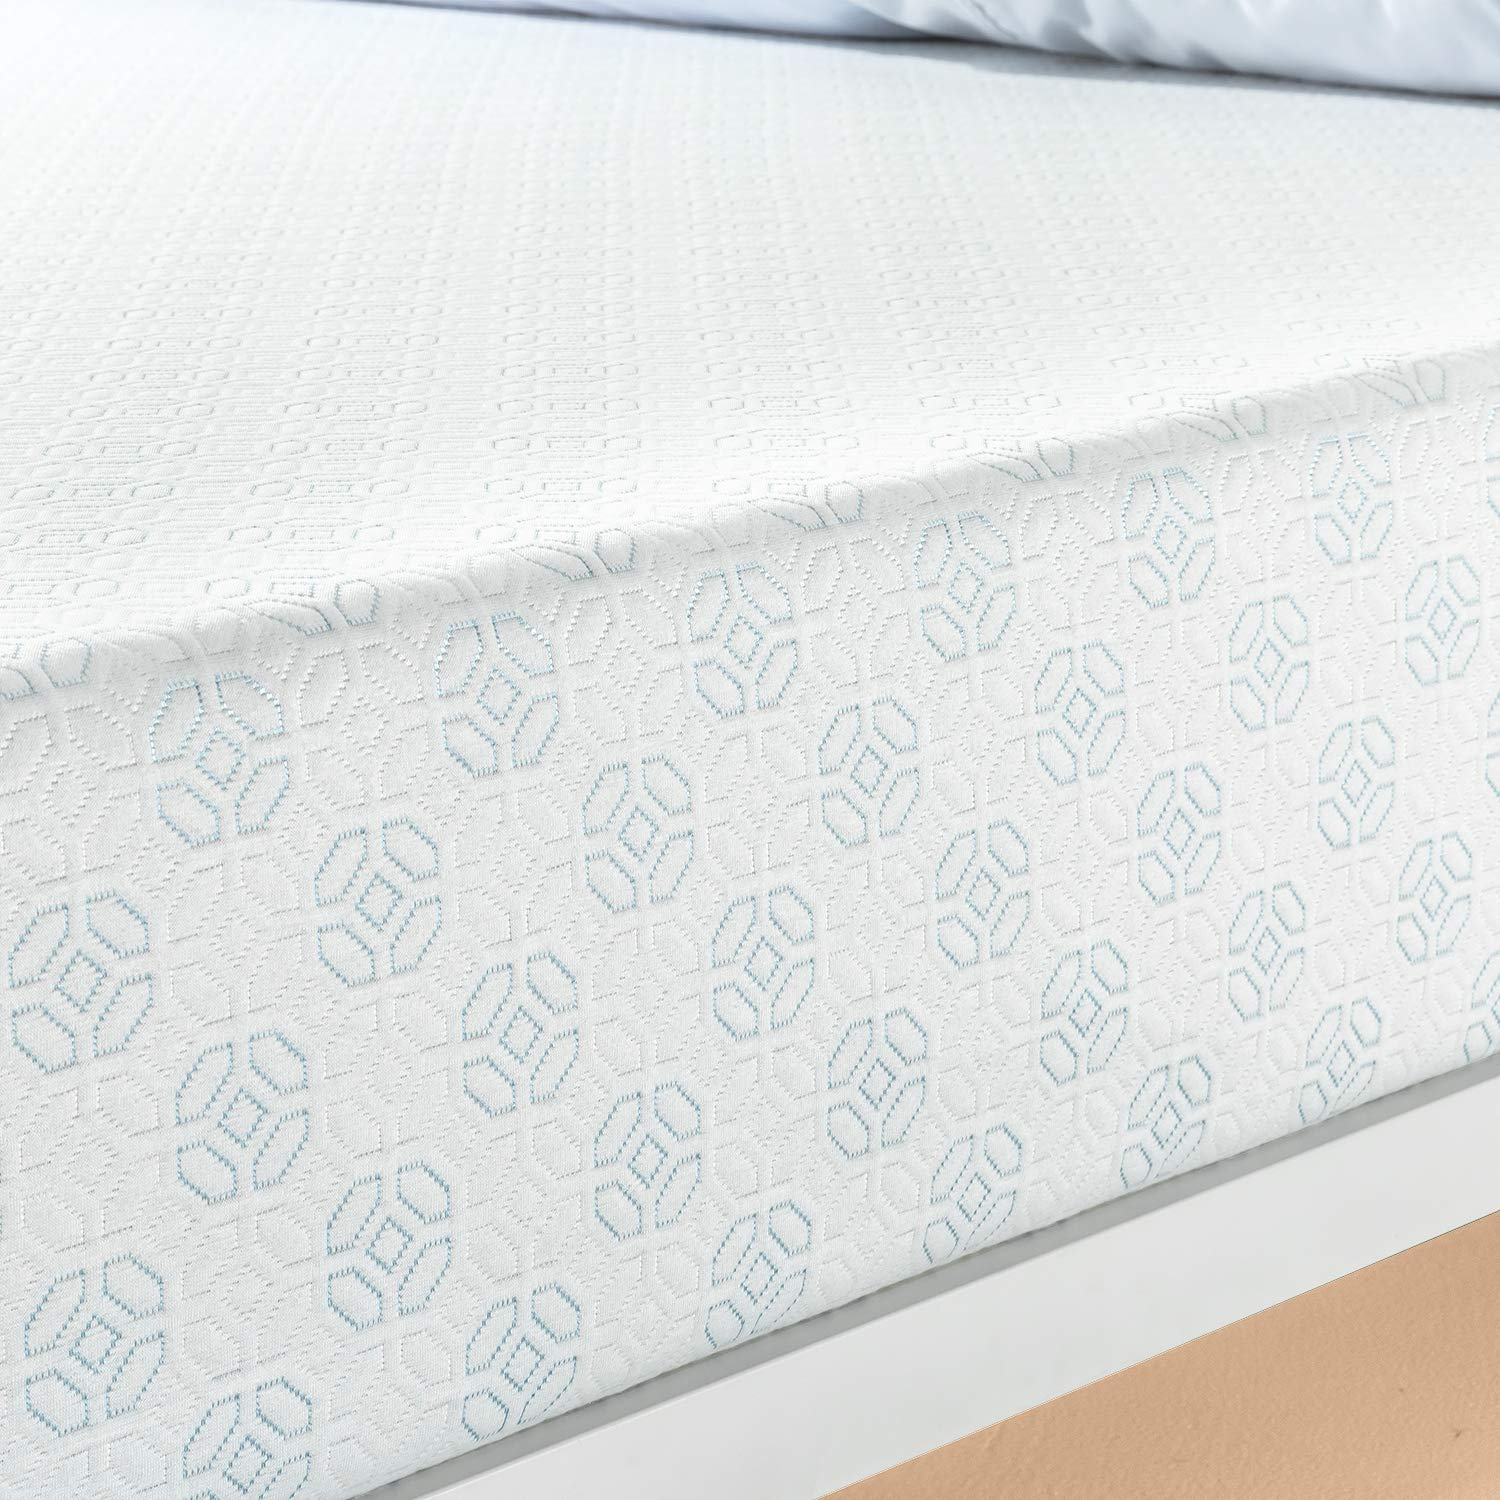 Zinus Gel-Infused Green Tea Memory Foam Mattress Review